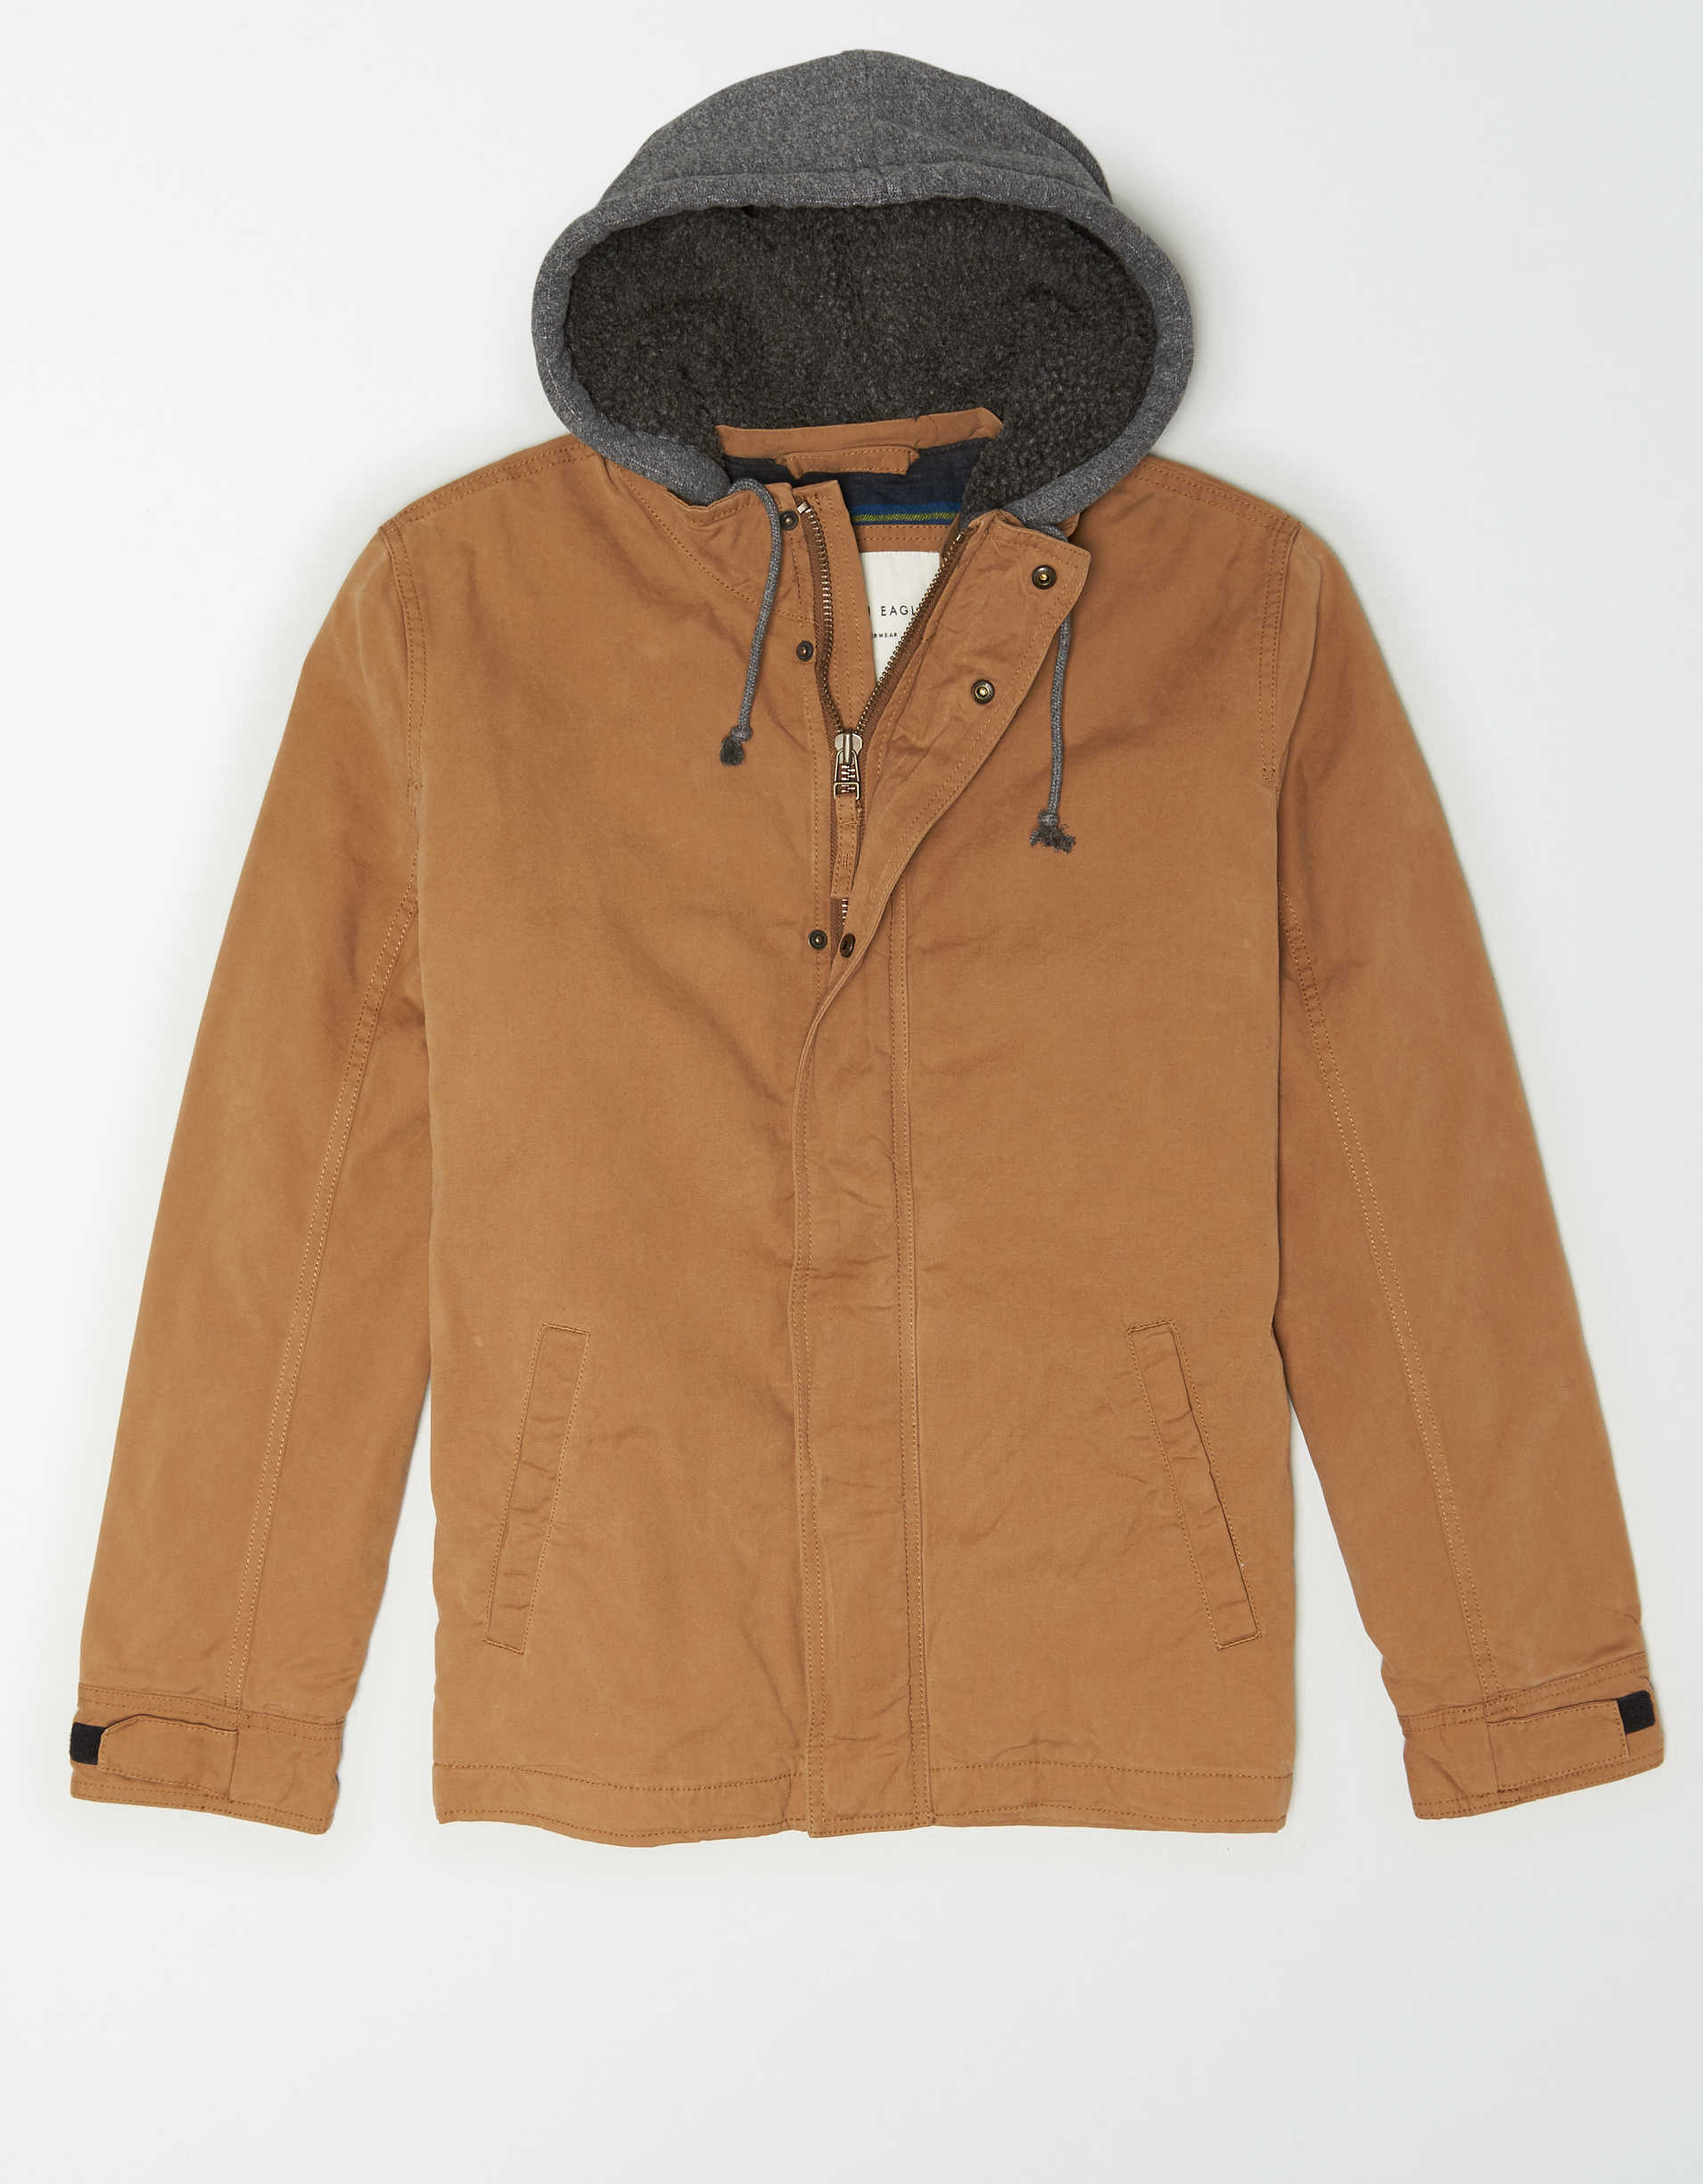 AE Lined Workwear Jacket